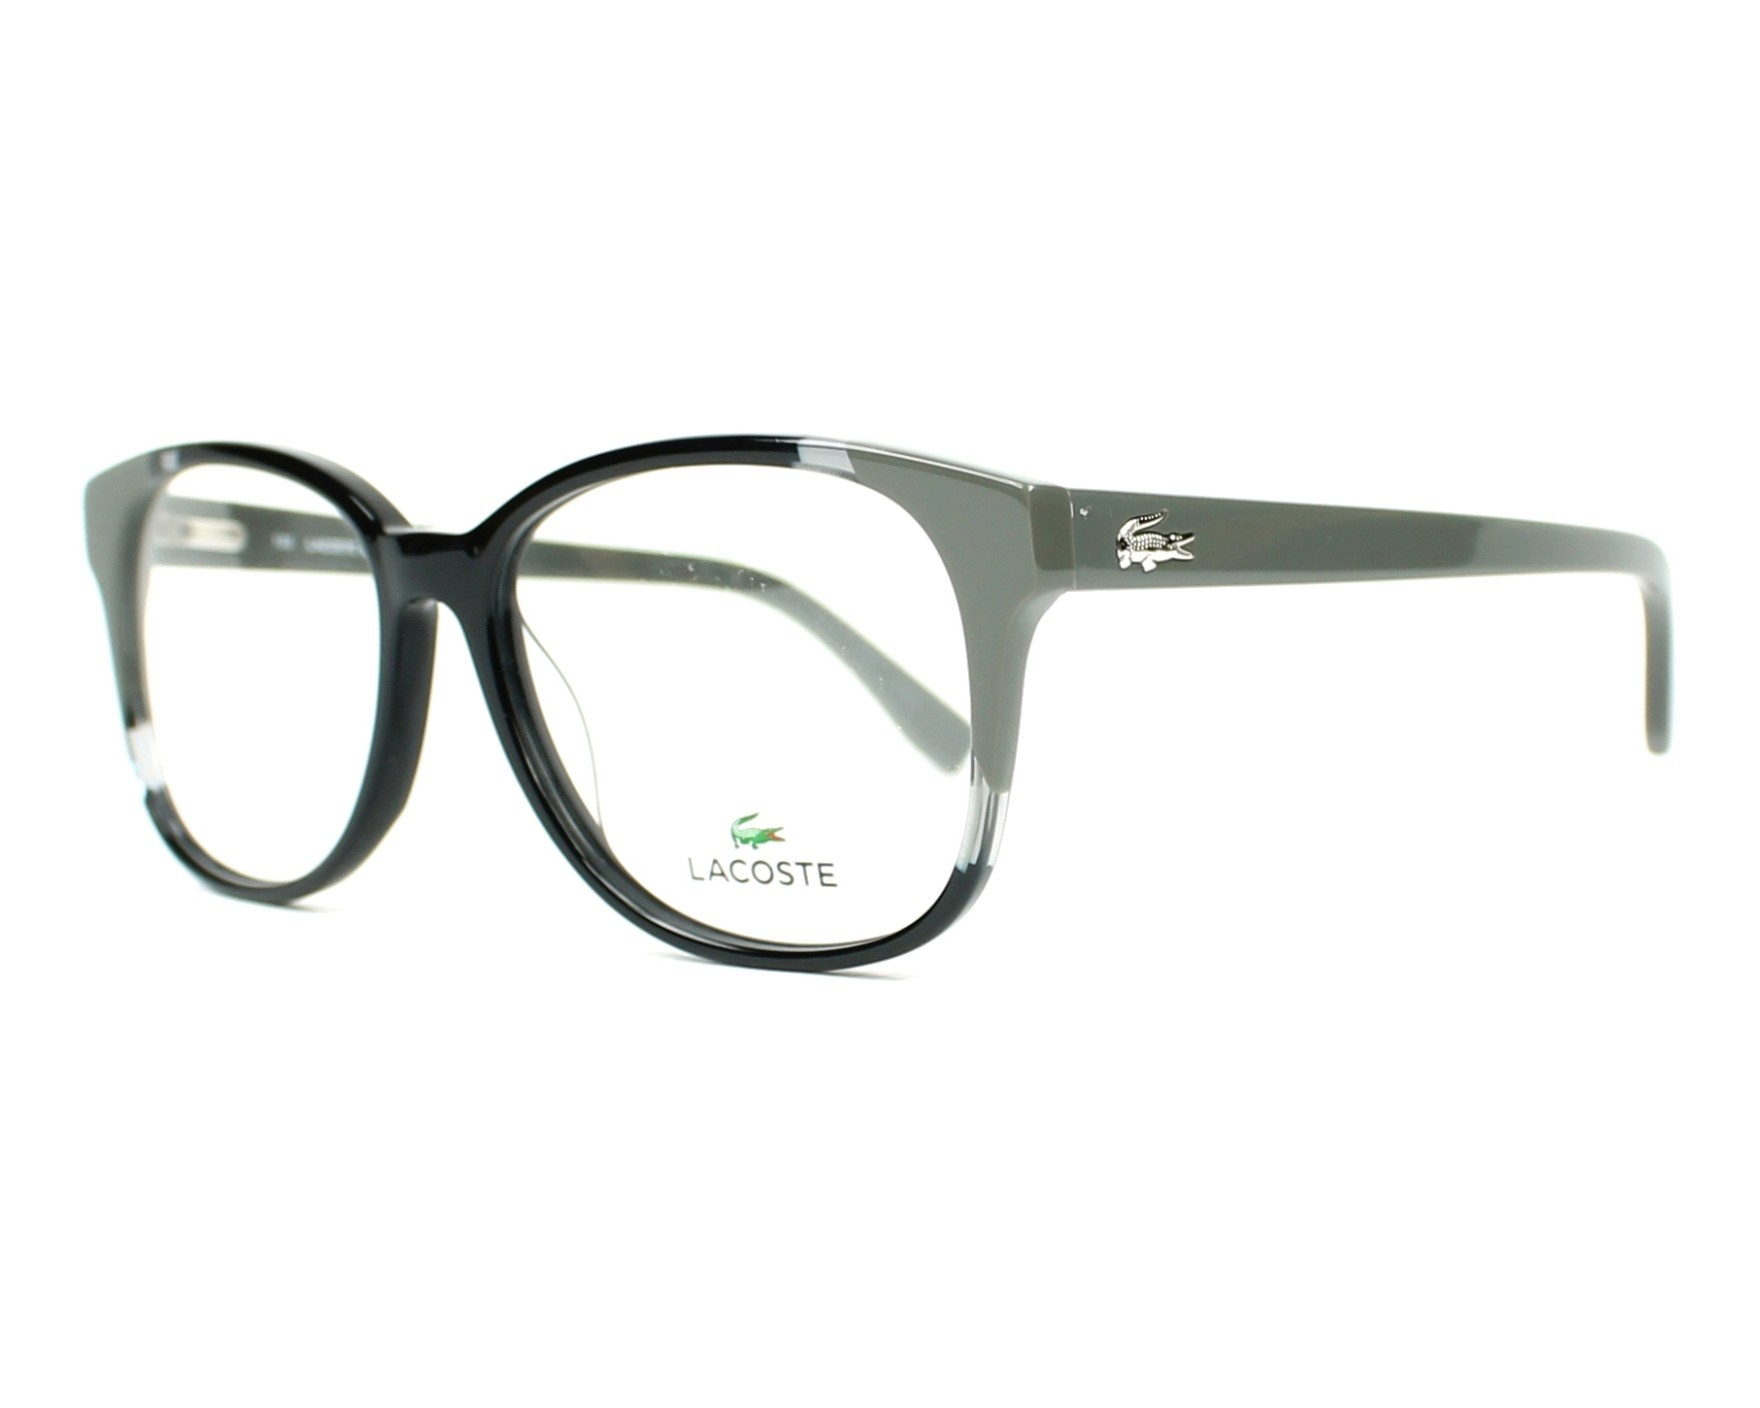 bec0e4462b6 Lacoste - Buy Lacoste eyeglasses online at low prices